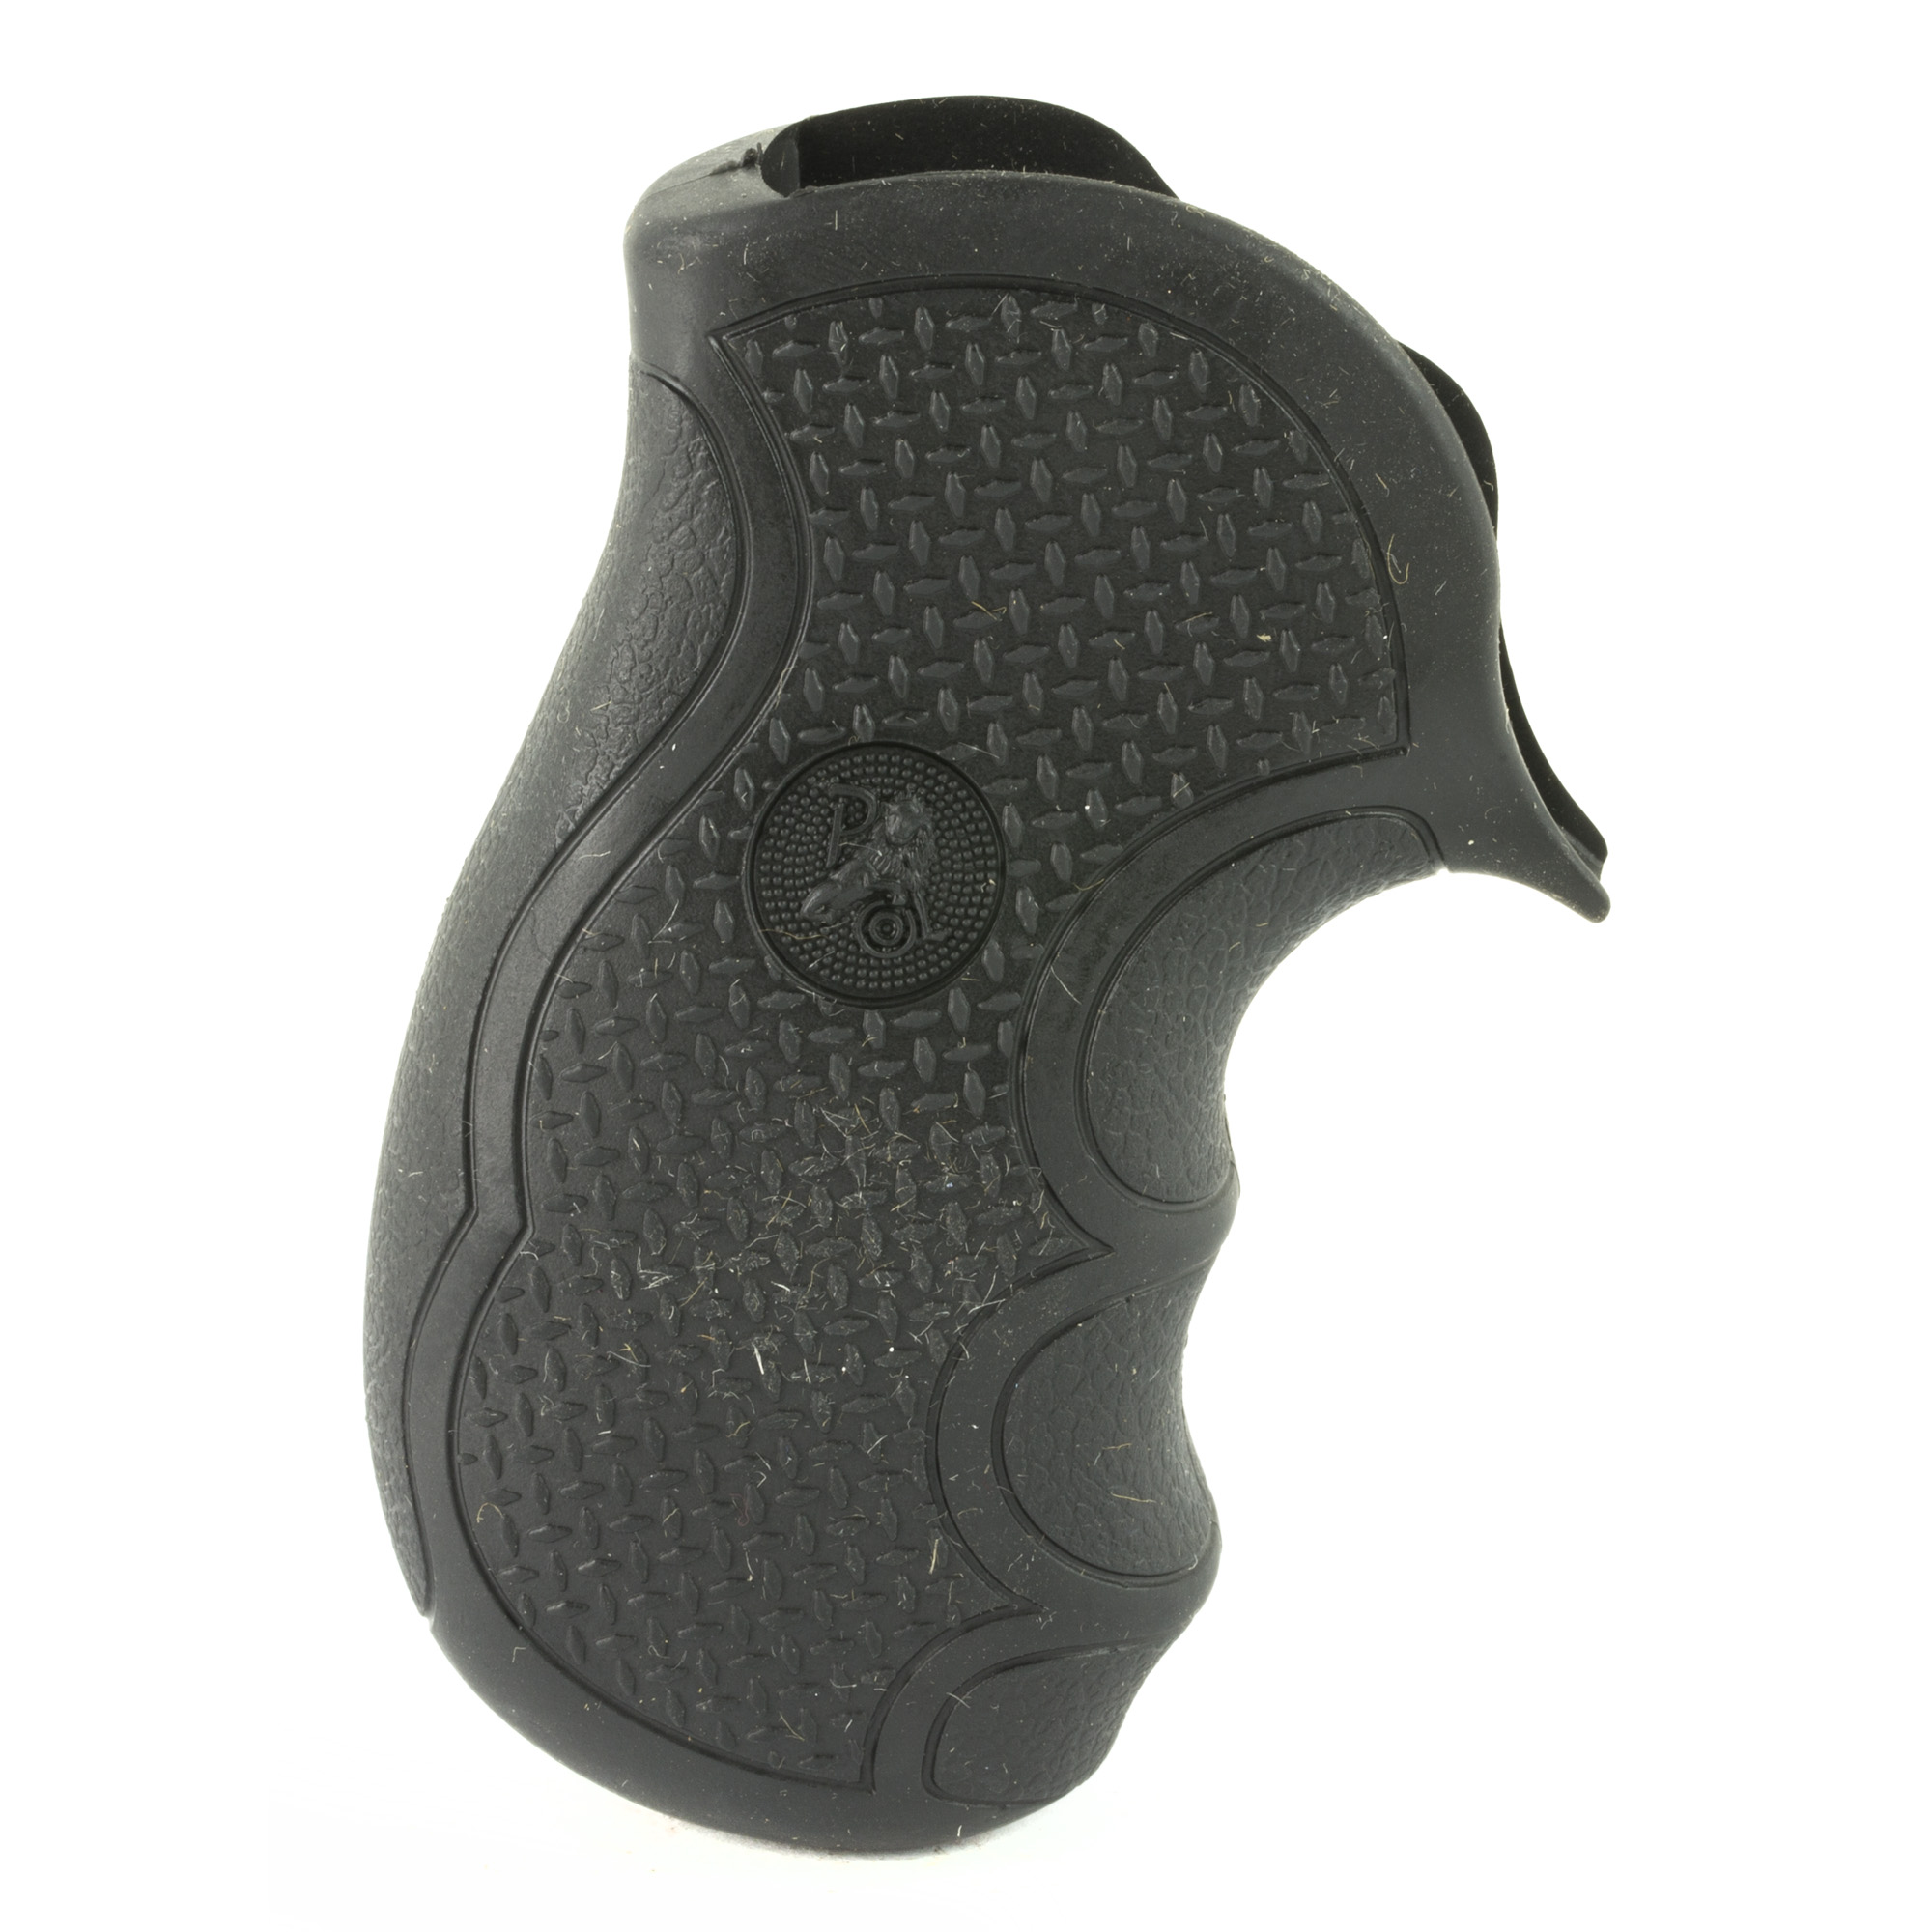 """Pachmayr is proud to introduce the Diamond Pro Series revolver grips. This grip line is designed to fill the hand comfortably"""" with natural feel and point. The unique shape is covered with our """"Diamond Plate"""" texture. This gives you rugged good looks and absolute control of your revolver"""" even under the heaviest recoil. The revolver grips are made using our specially blended rubber compounds"""" formulated to give you the long lasting soft feel you expect and the best recoil reduction you deserve. Order the Diamond Pro Series Grips by Pachmayr today for a revolver grip that improves comfort and performance."""